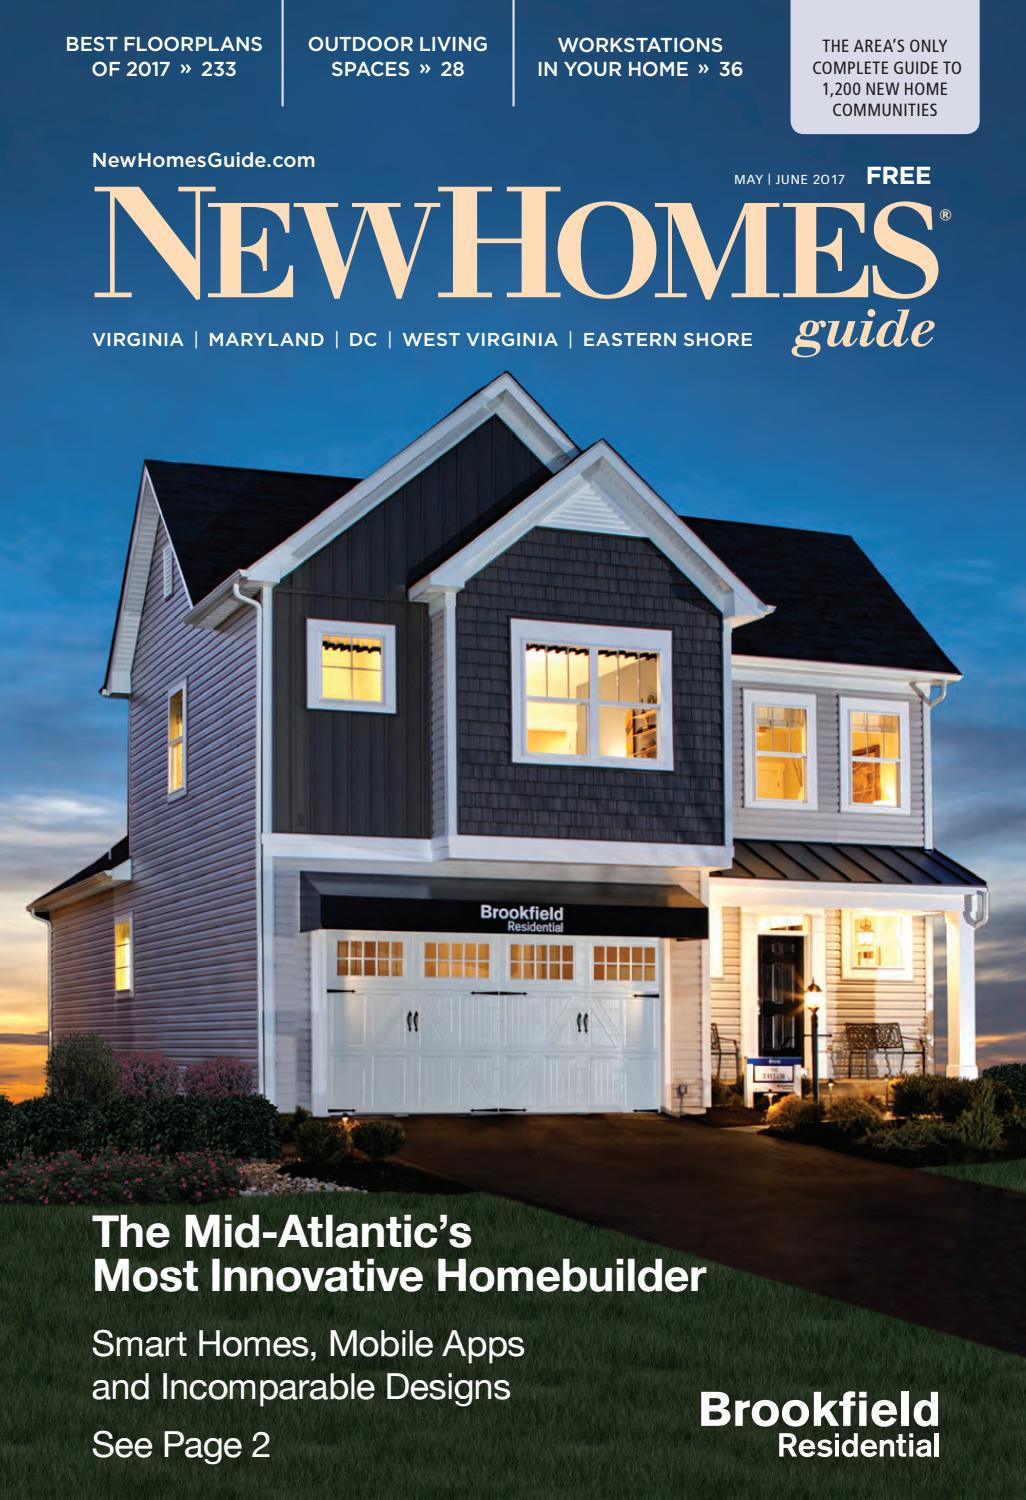 Dc new homes guide may june 2017 by dc new homes guide issuu for Home builders guide